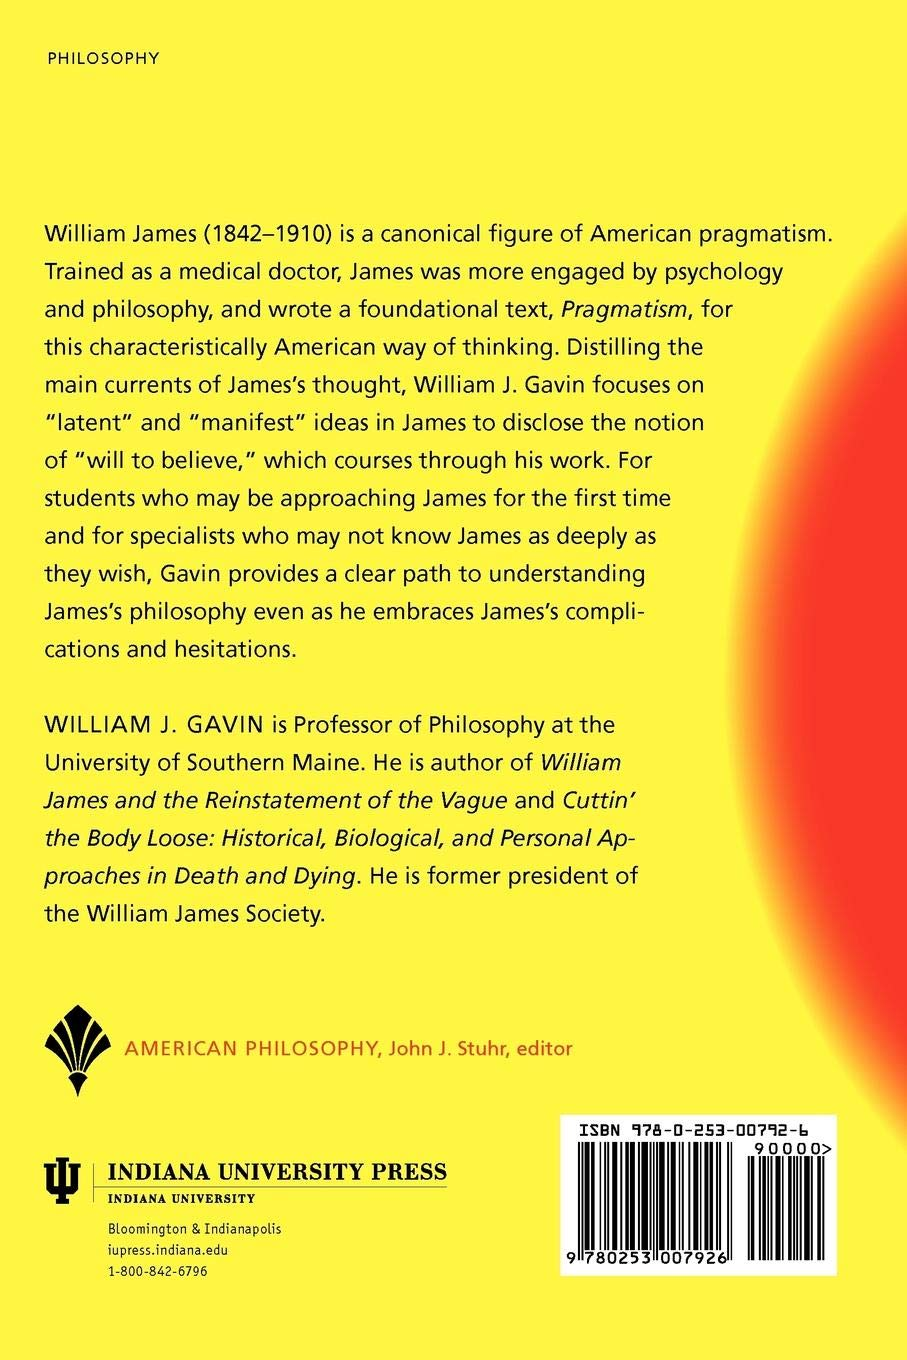 William James in Focus: Willing to Believe (American